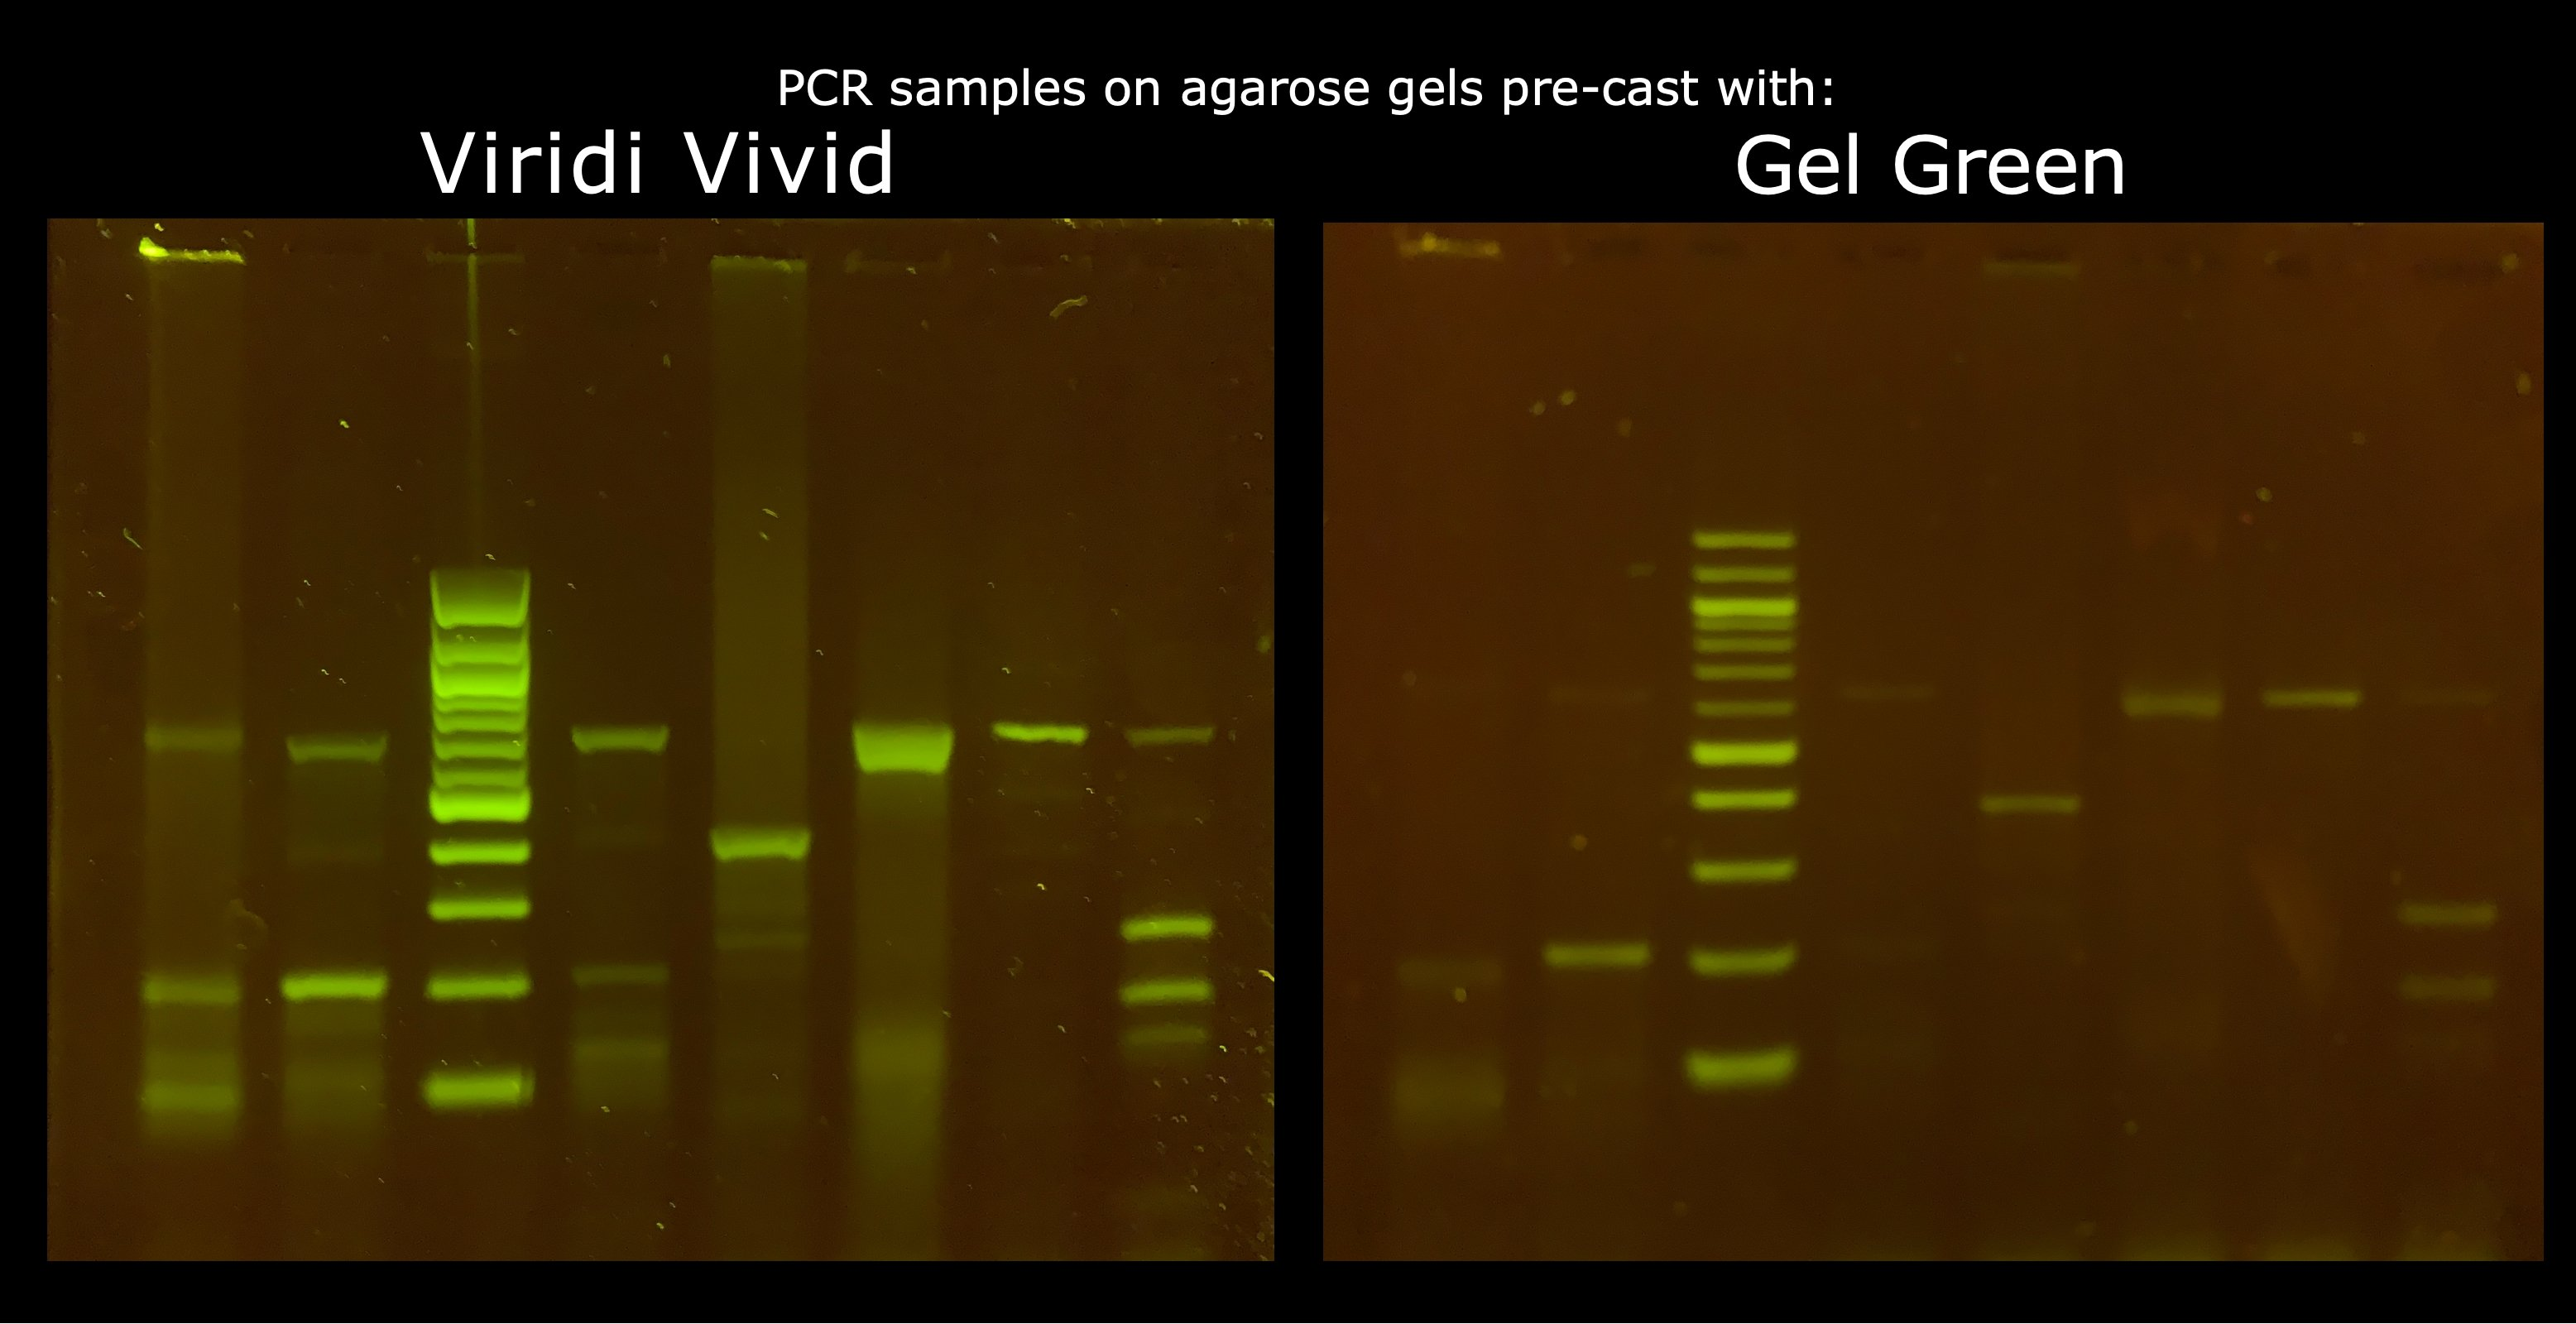 Image of a DNA gel stained with Viridi DNA stain